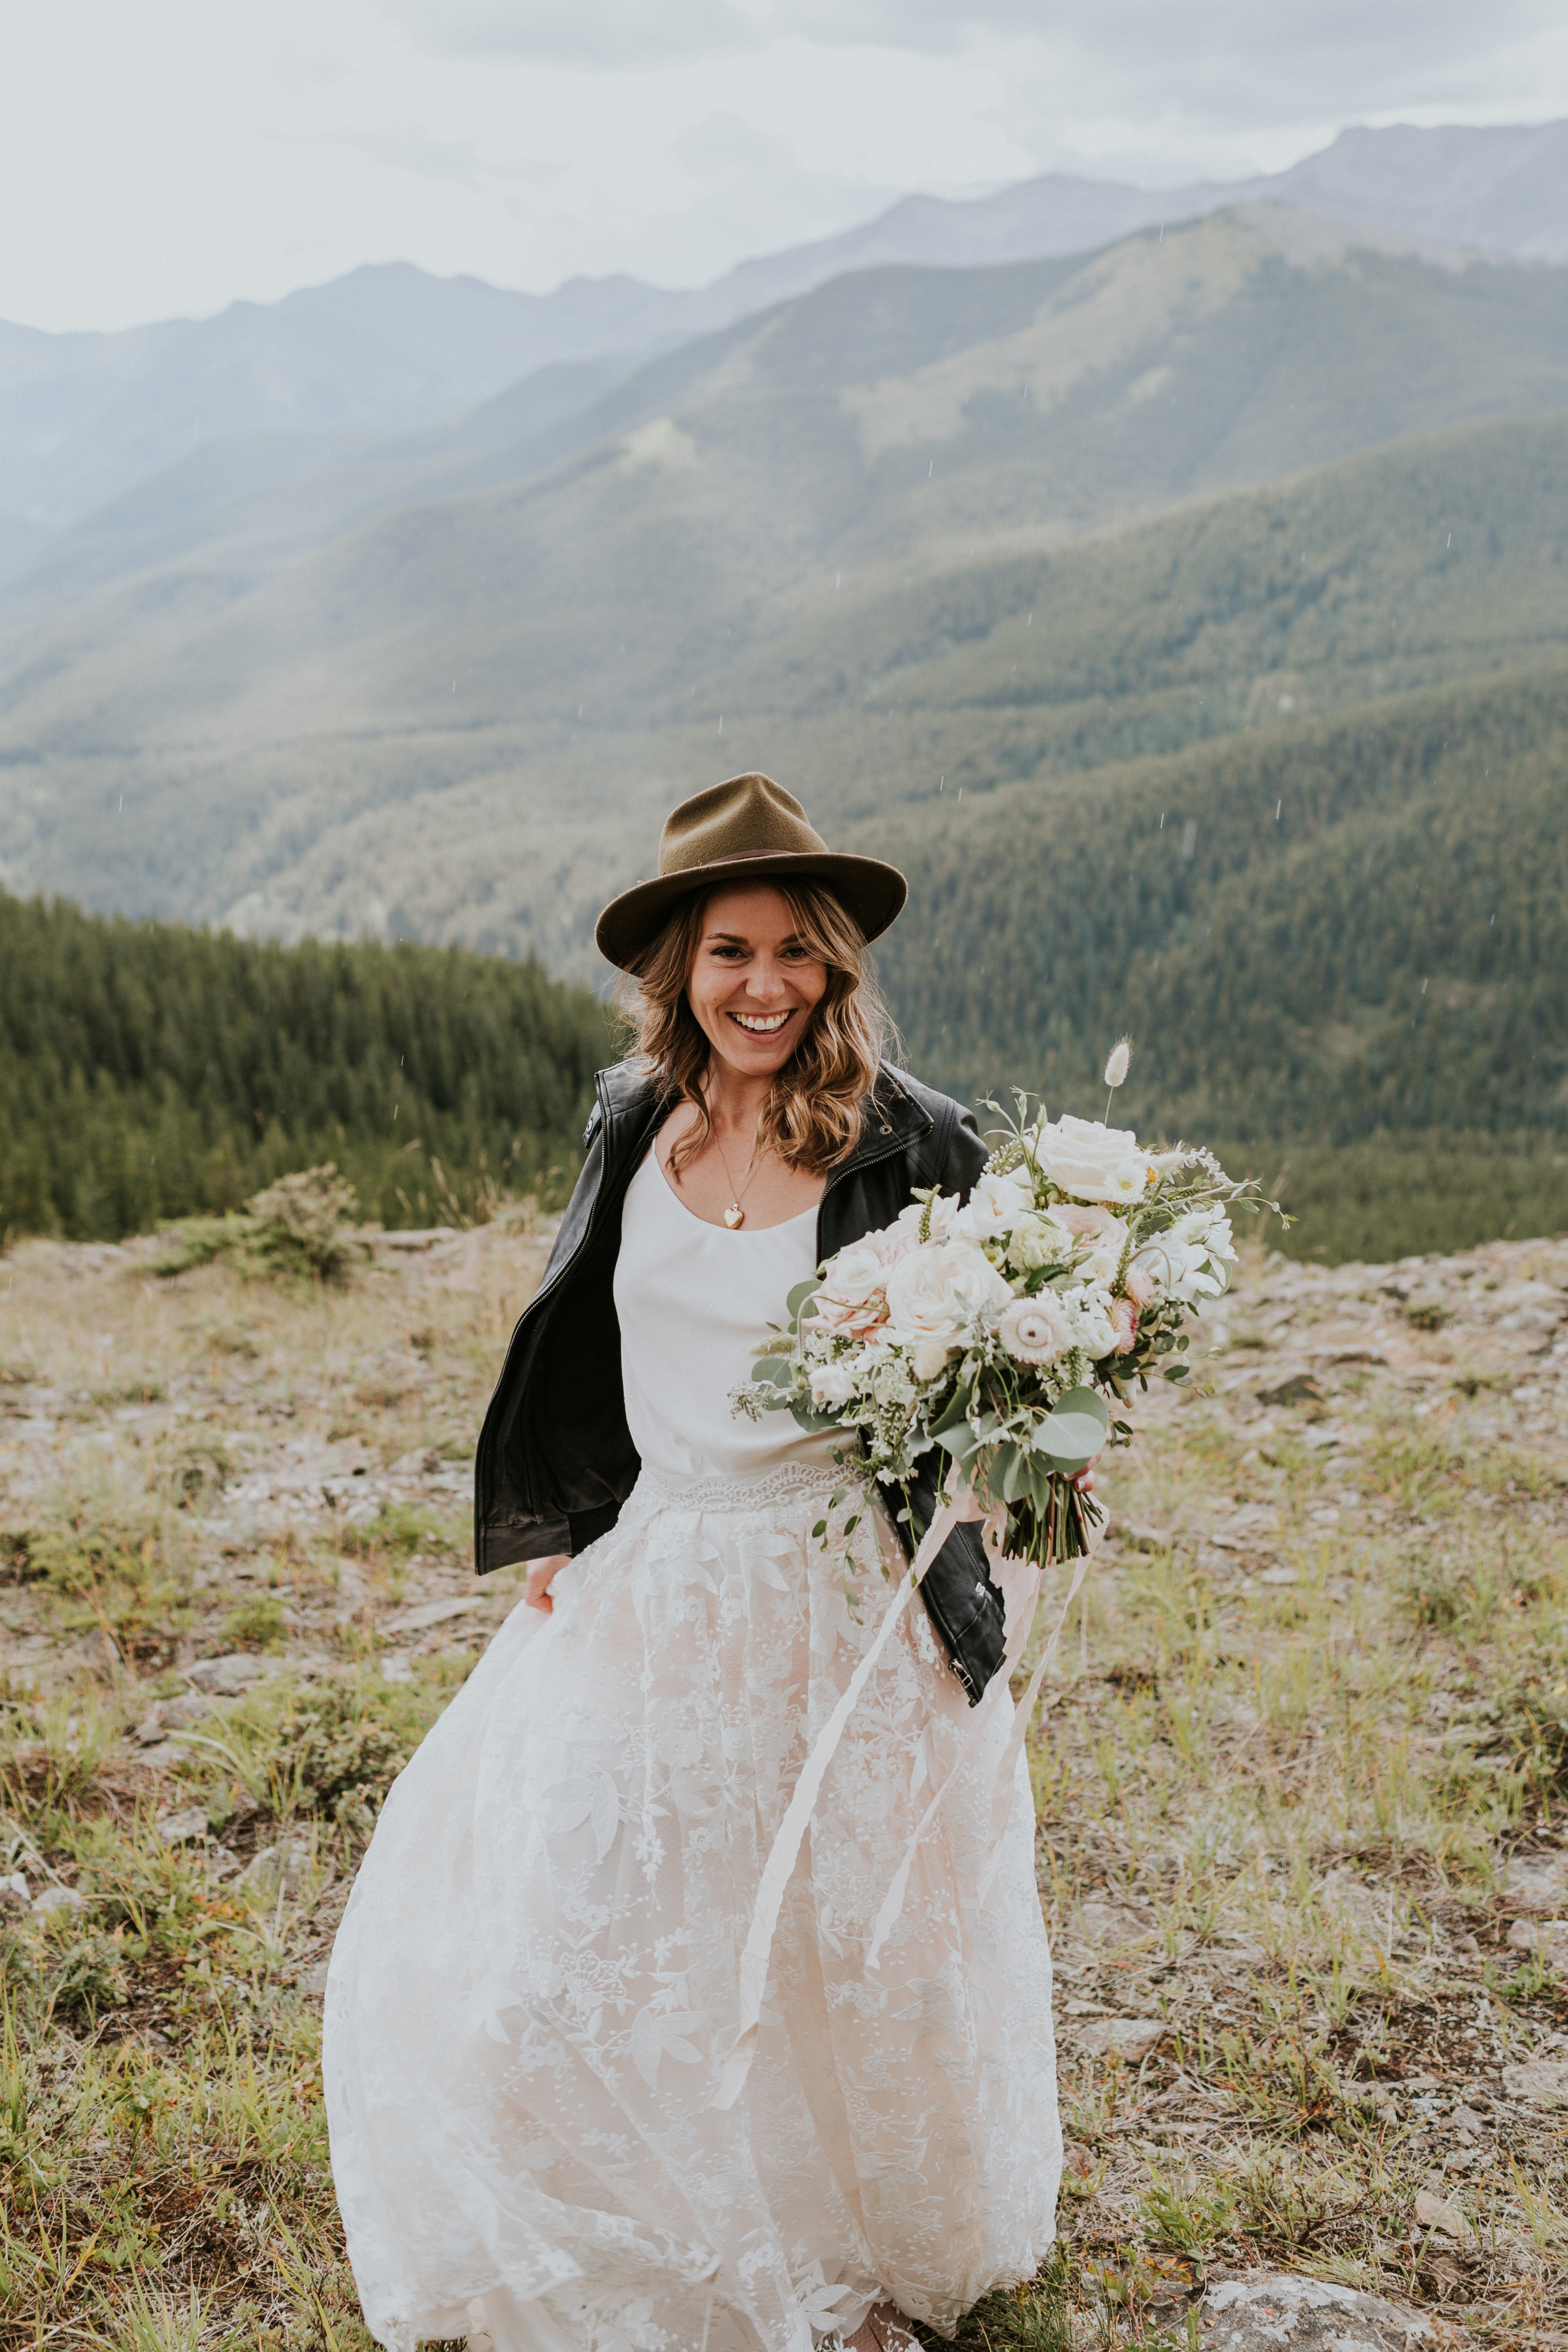 Rockey Mountain Bride